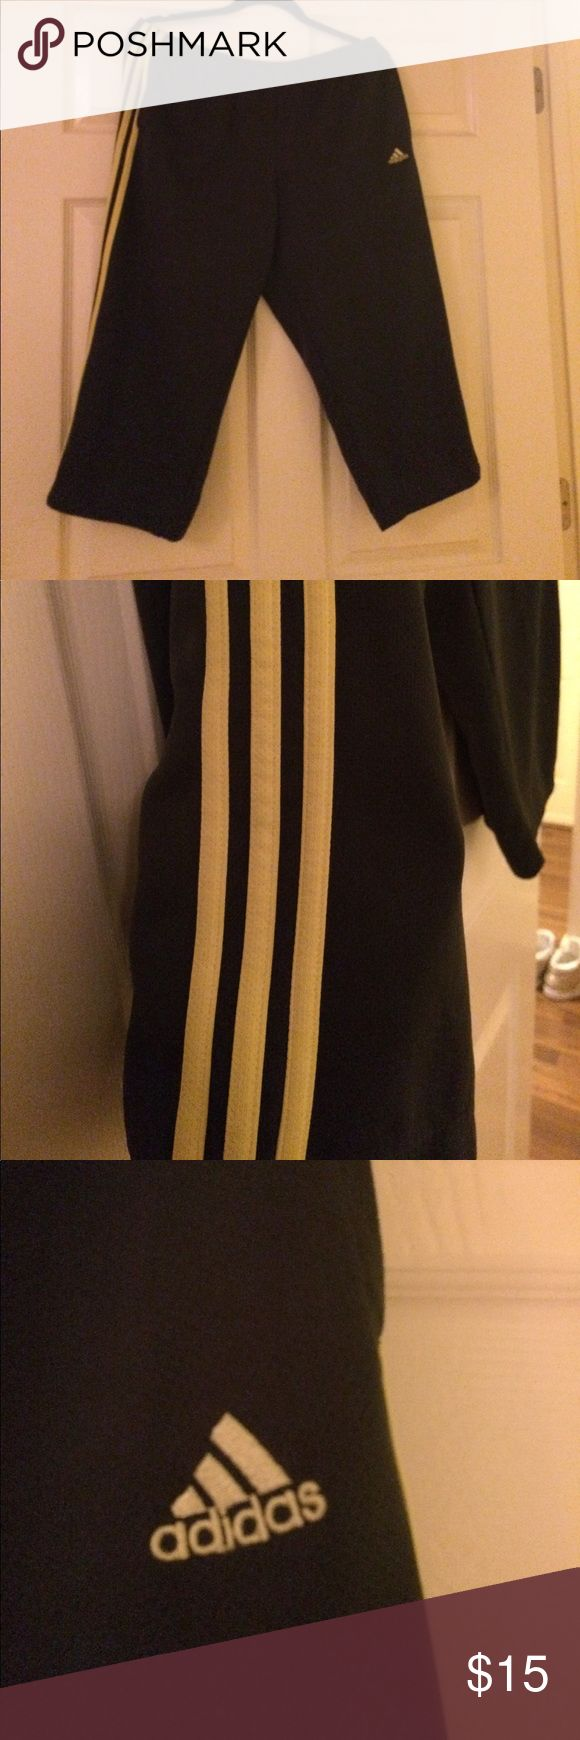 Adidas Capri Pants - Size XL. Adidas Capri Pants - Size XL. These pants are solid gray with neon yellow strips and Adams's symbol. These are more fitted that the mesh Capri Pants. No flaws. Smoke-free and clean home. adidas Pants Capris